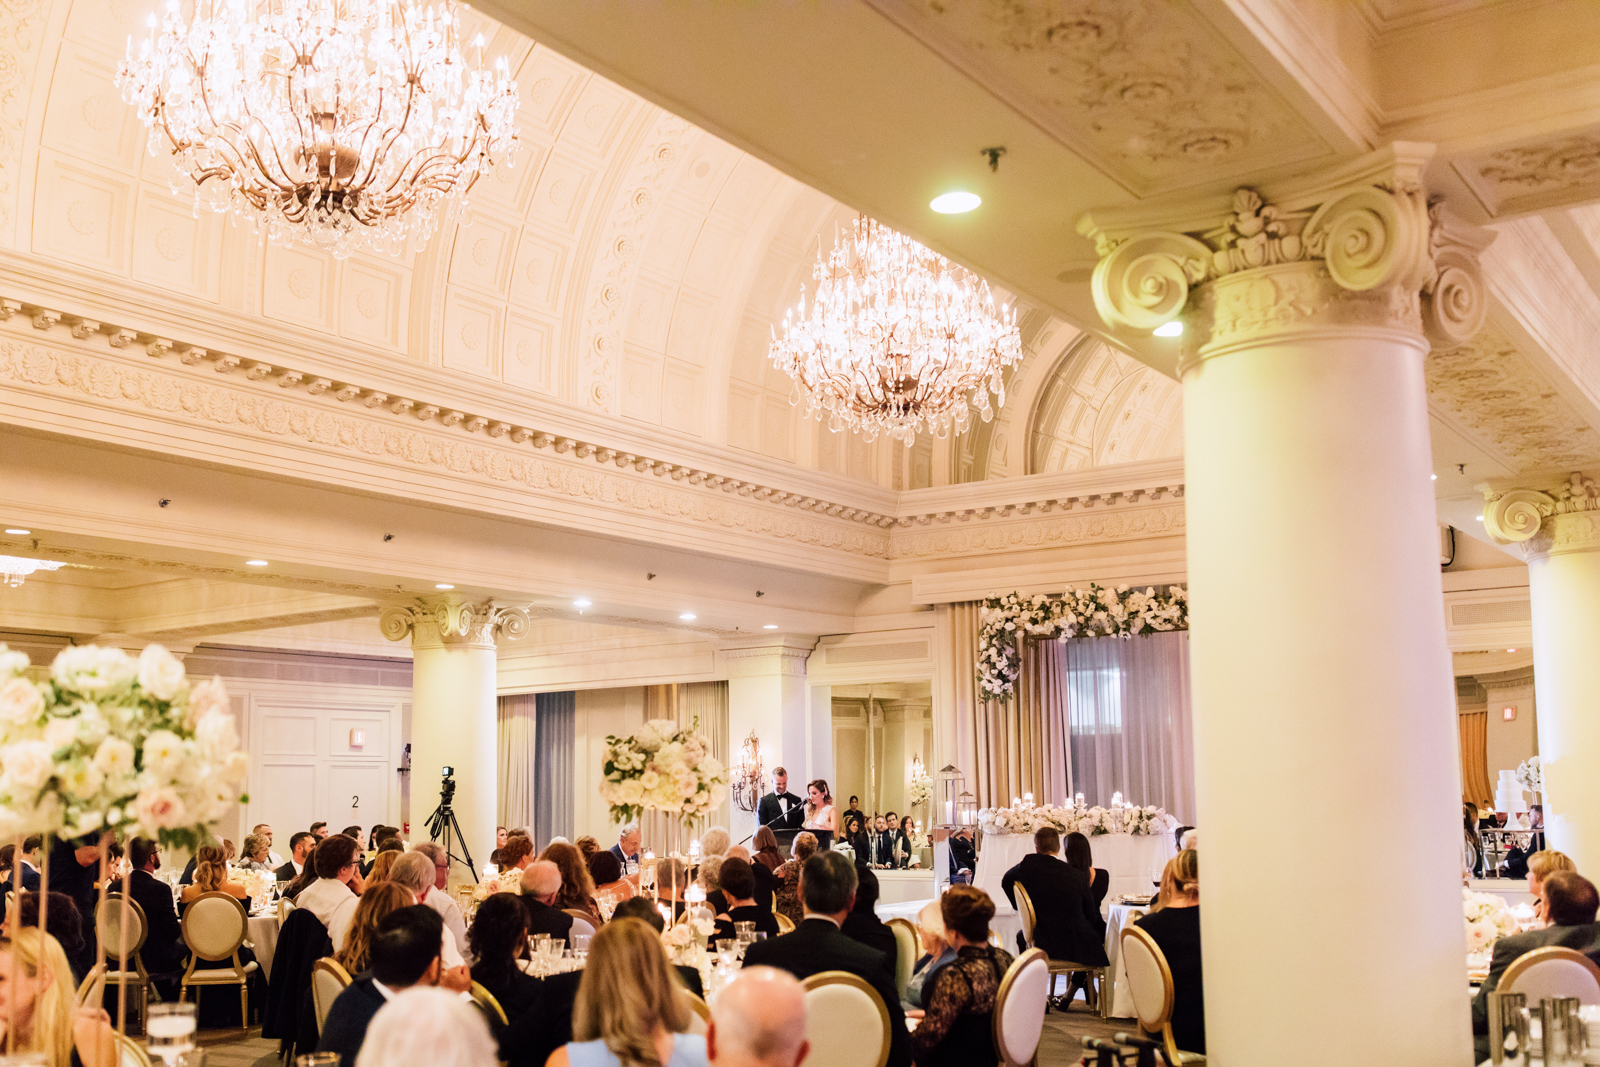 Opulent wedding speech